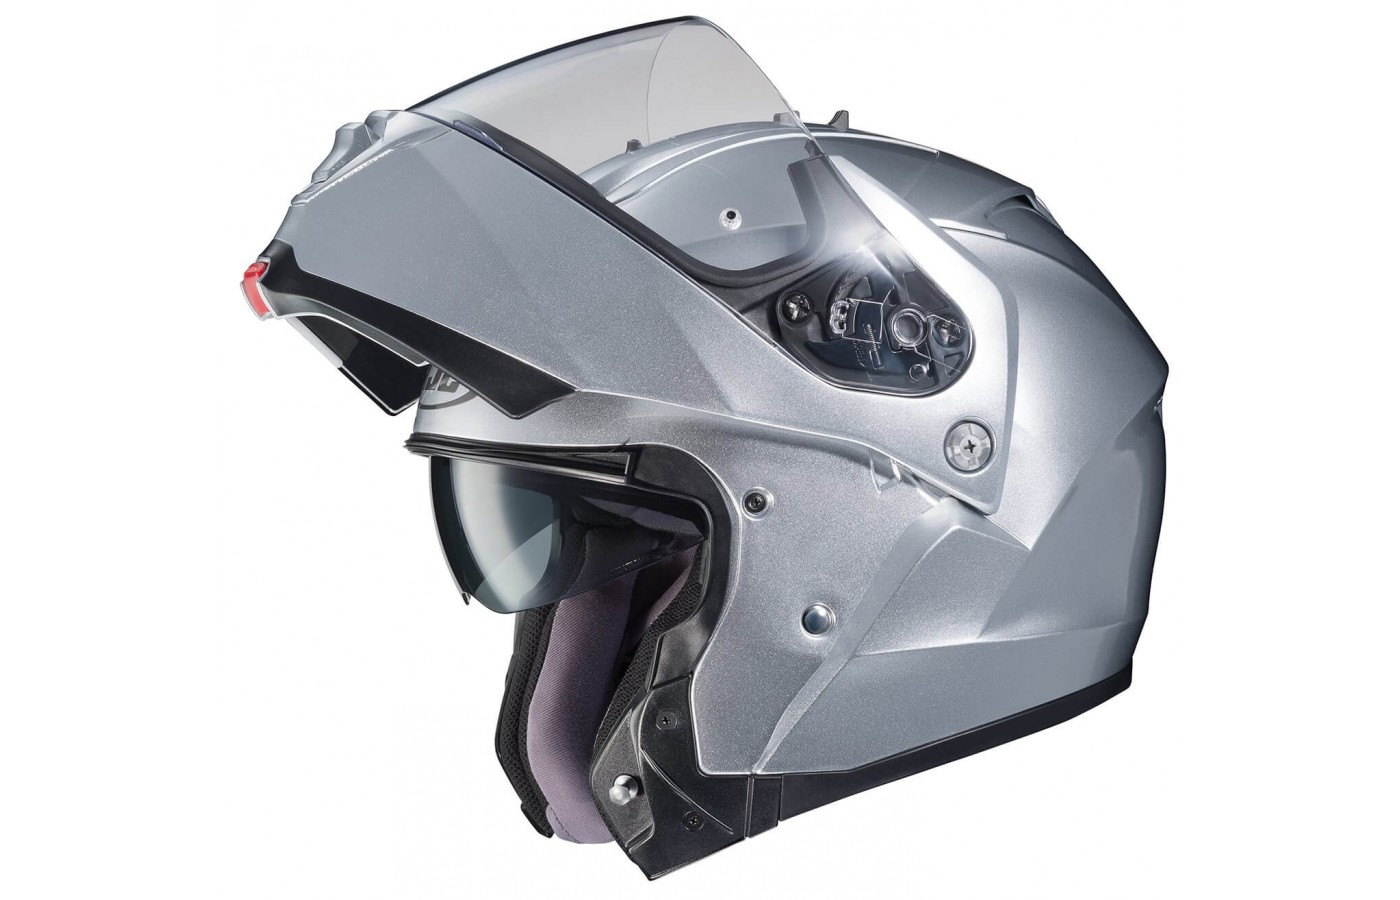 The visor is easy to adjust